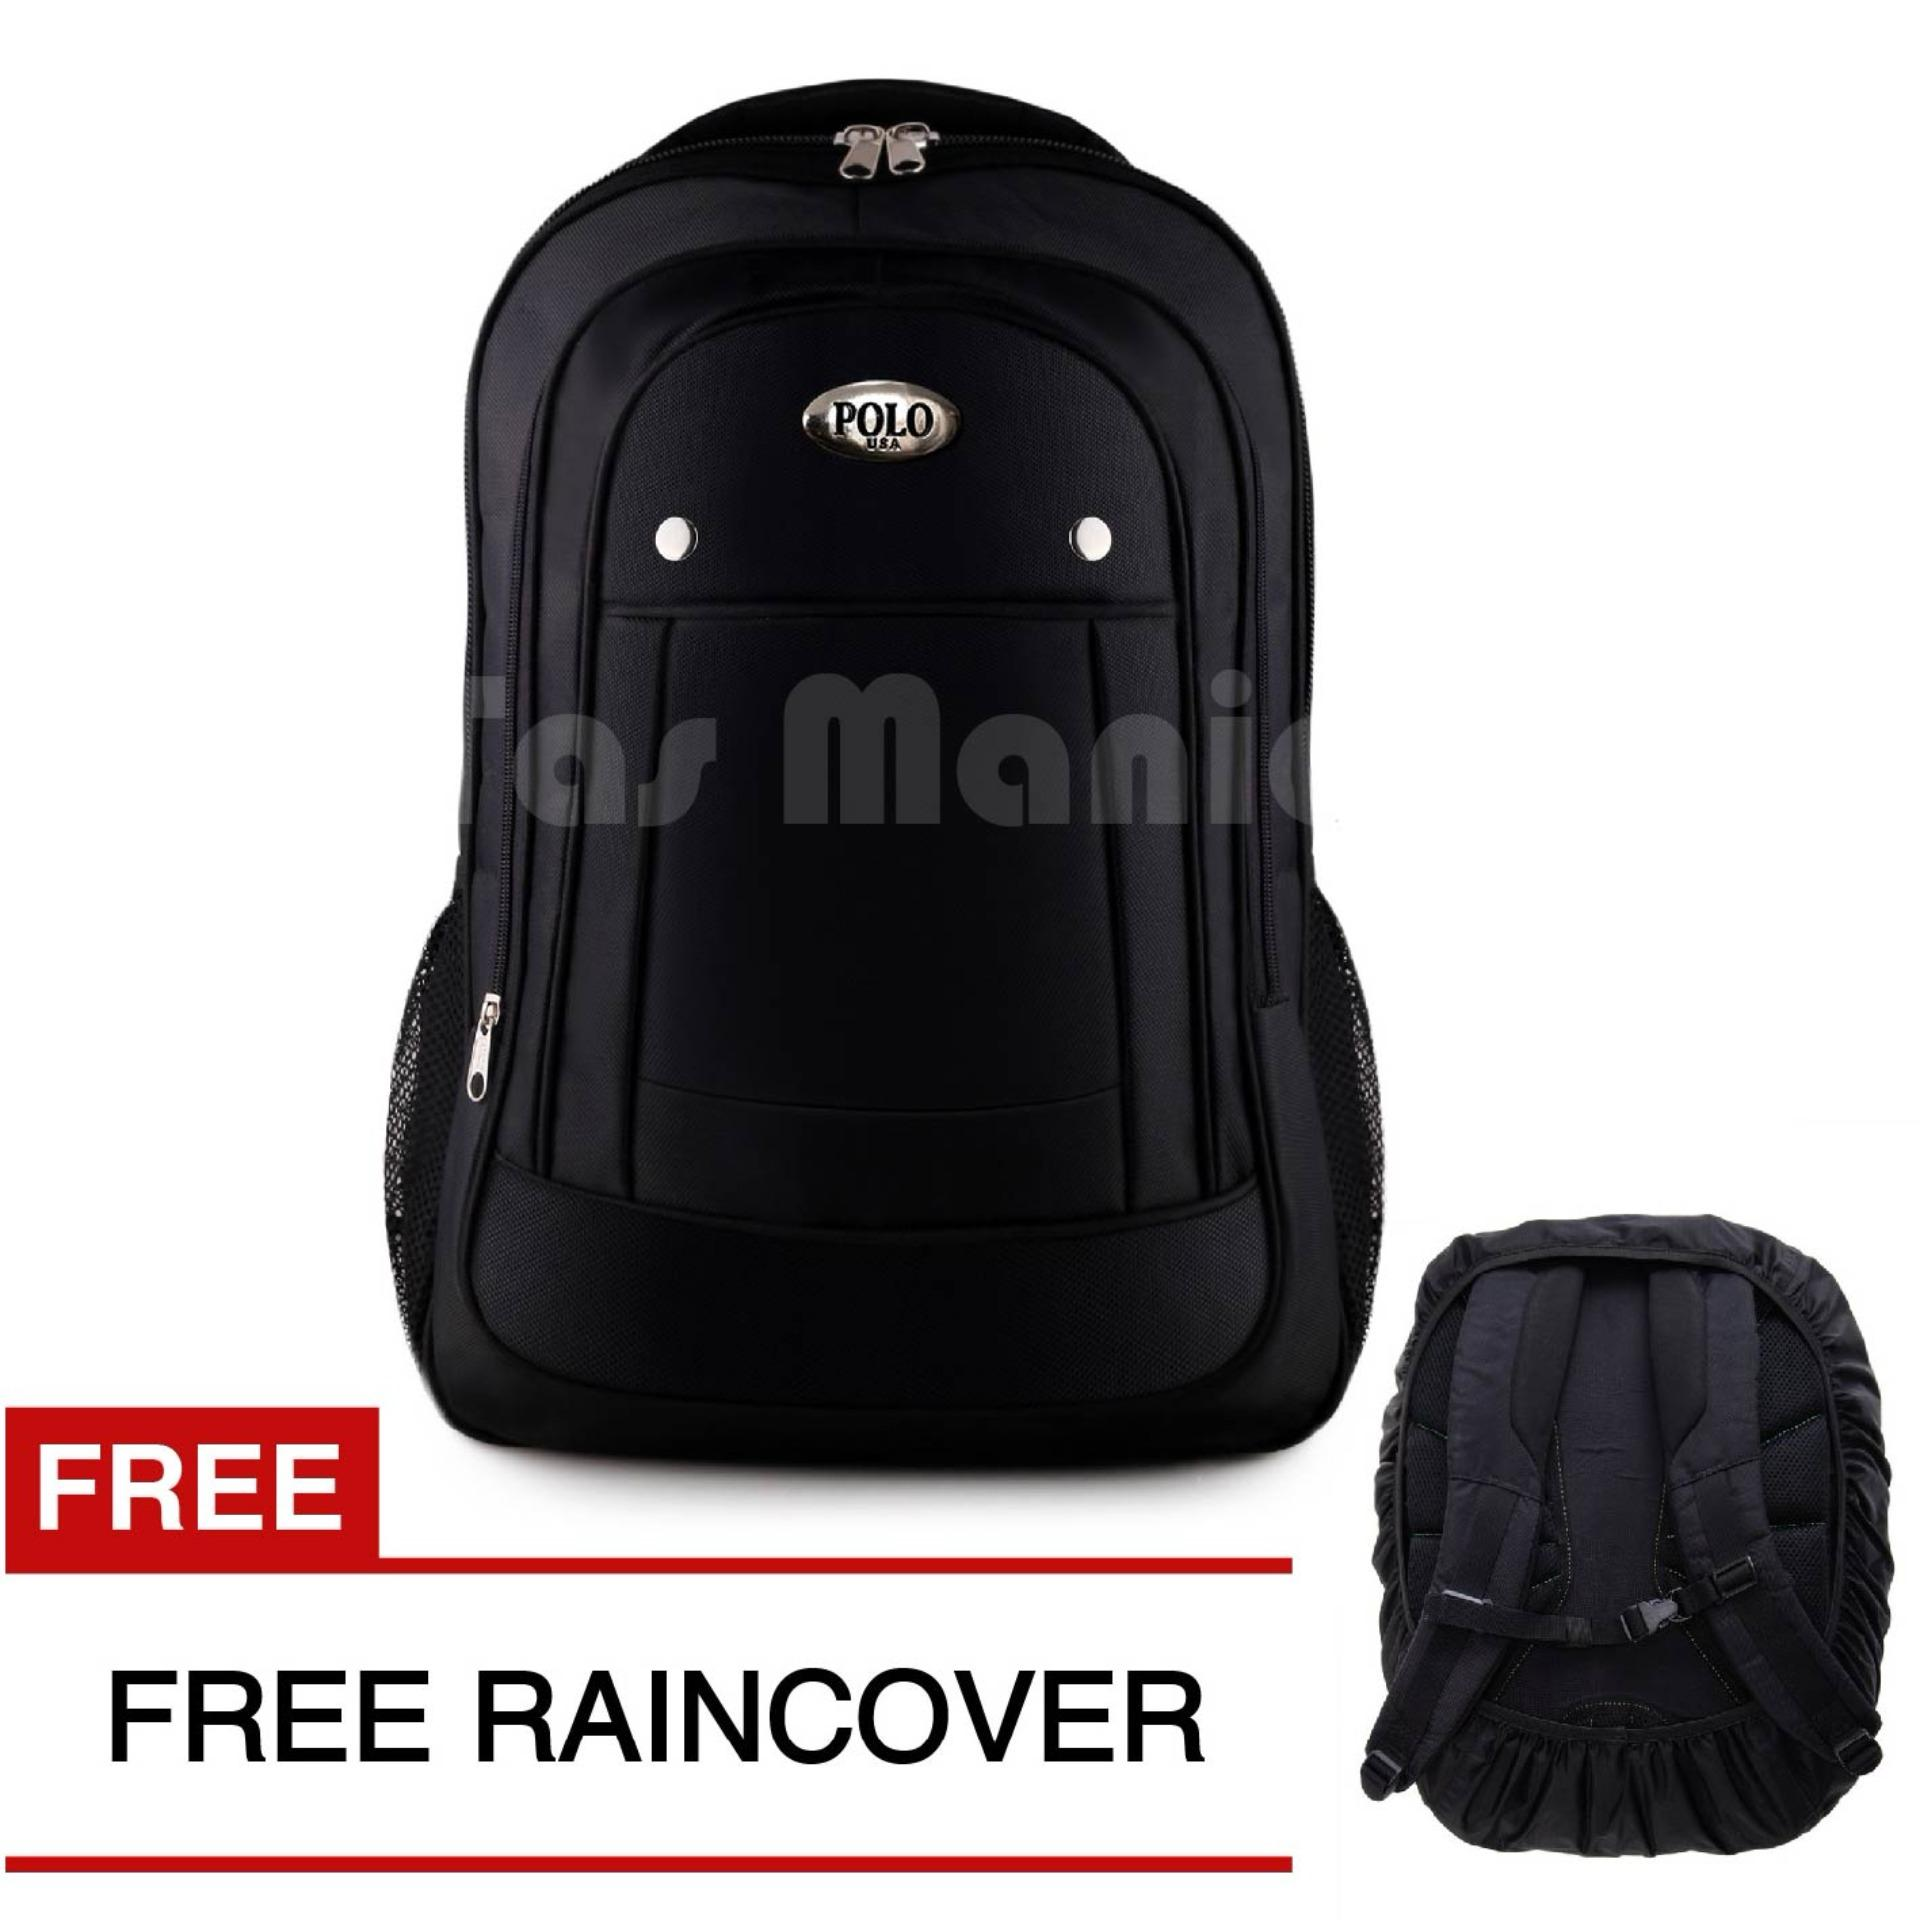 Polo Campus Black Cobra 827 Laptop Backpack + FREE Raincover